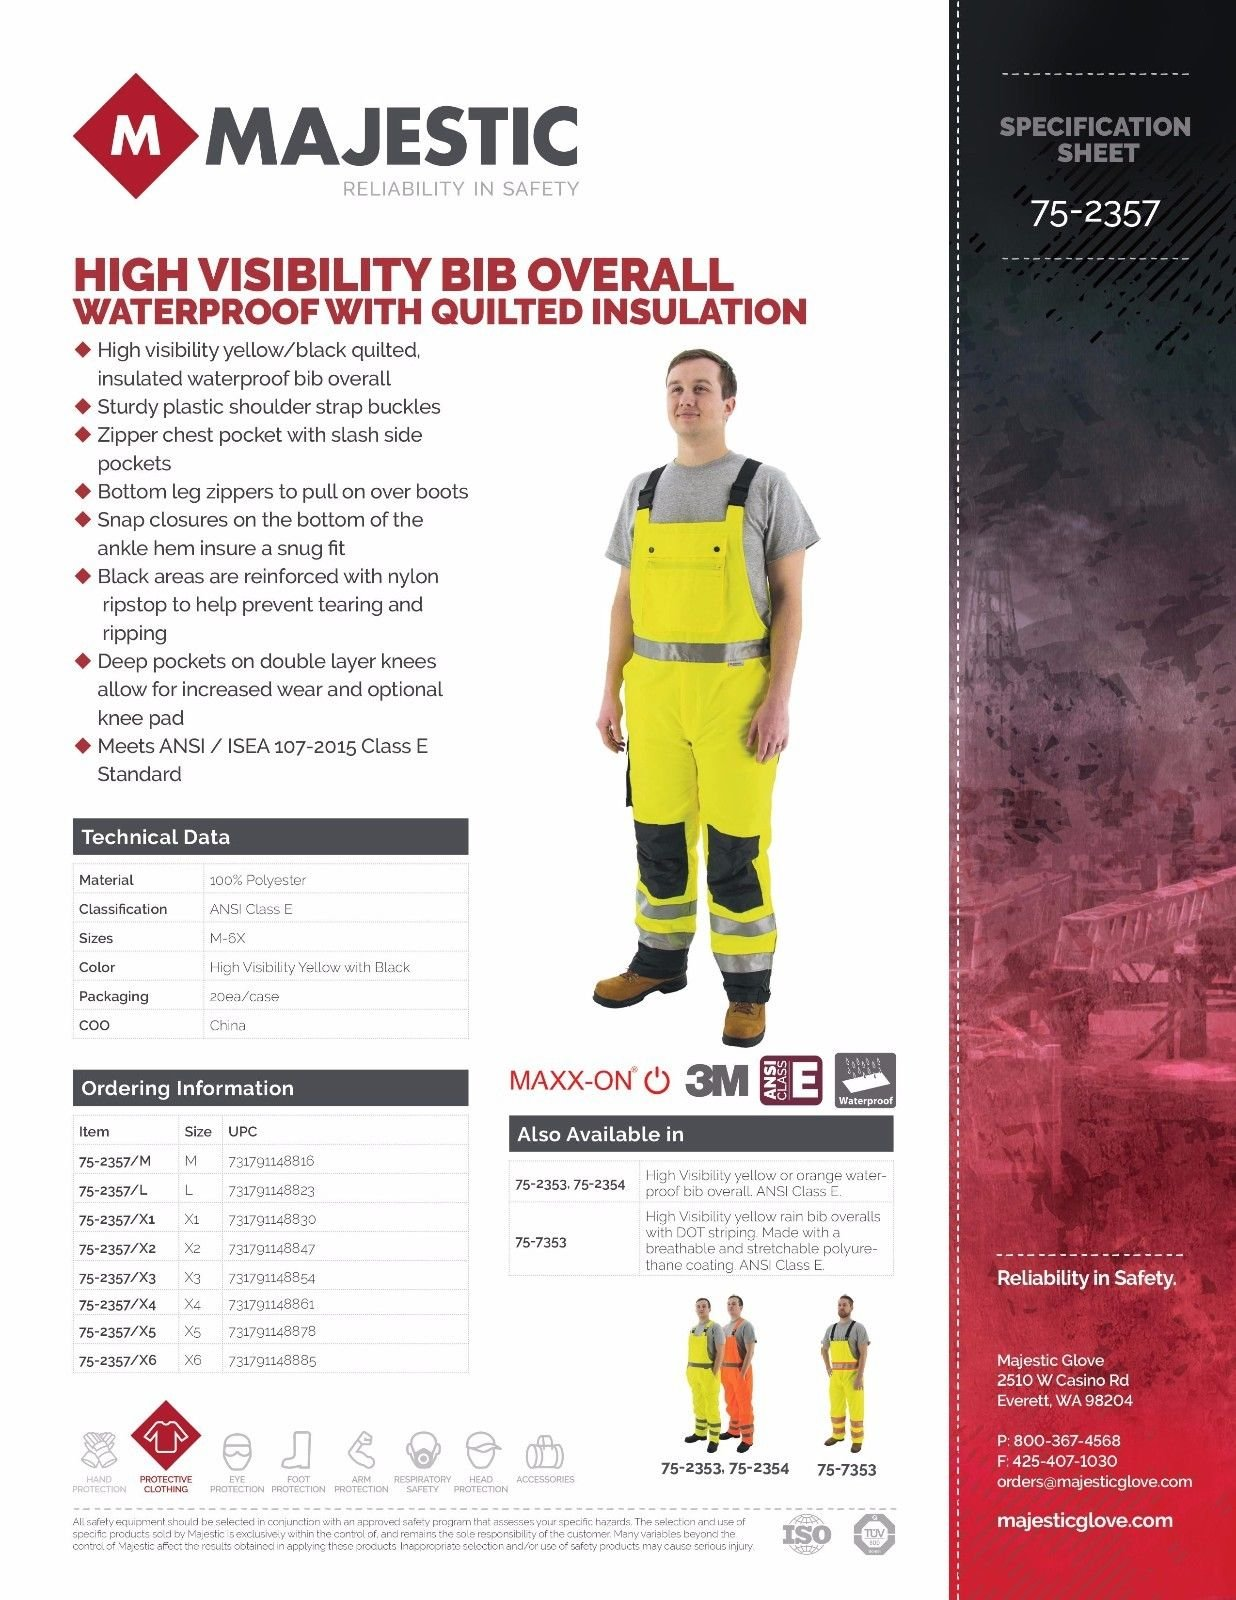 Majestic 75-2357 ANSI Class E Hi-Viz Bib Overalls, Waterproof, Quilted Insulation, Reinforced Nylon Rip-Stop, Zippers at Ankle, 3M Scotchlite, Yellow/Black, Size: XL by Majestic (Image #4)